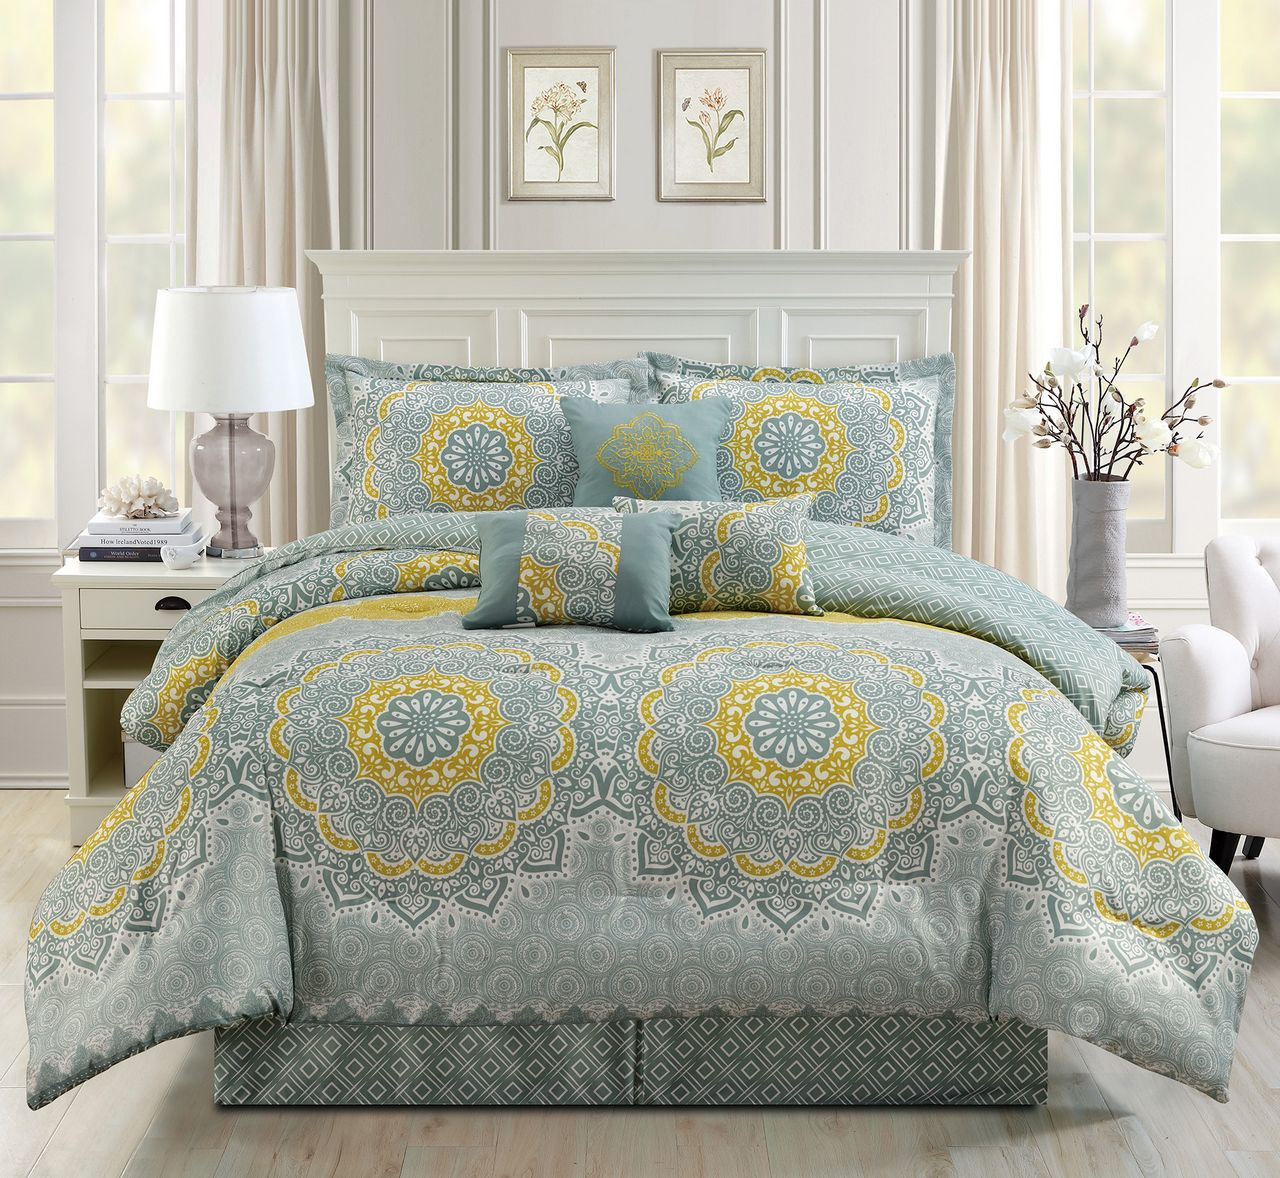 11 Piece Medallion Floral Yellow/Aqua Bed in a Bag Set Queen